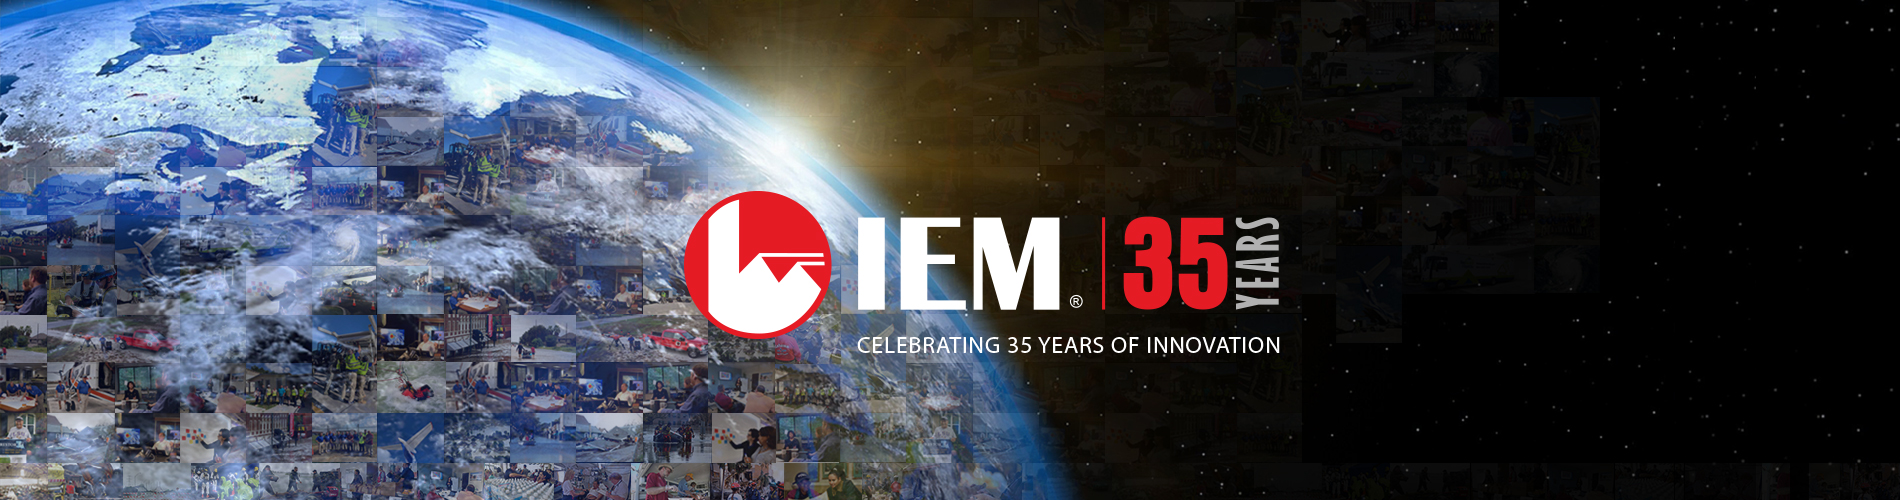 IEM - Celebrating 35 Years of Innovation